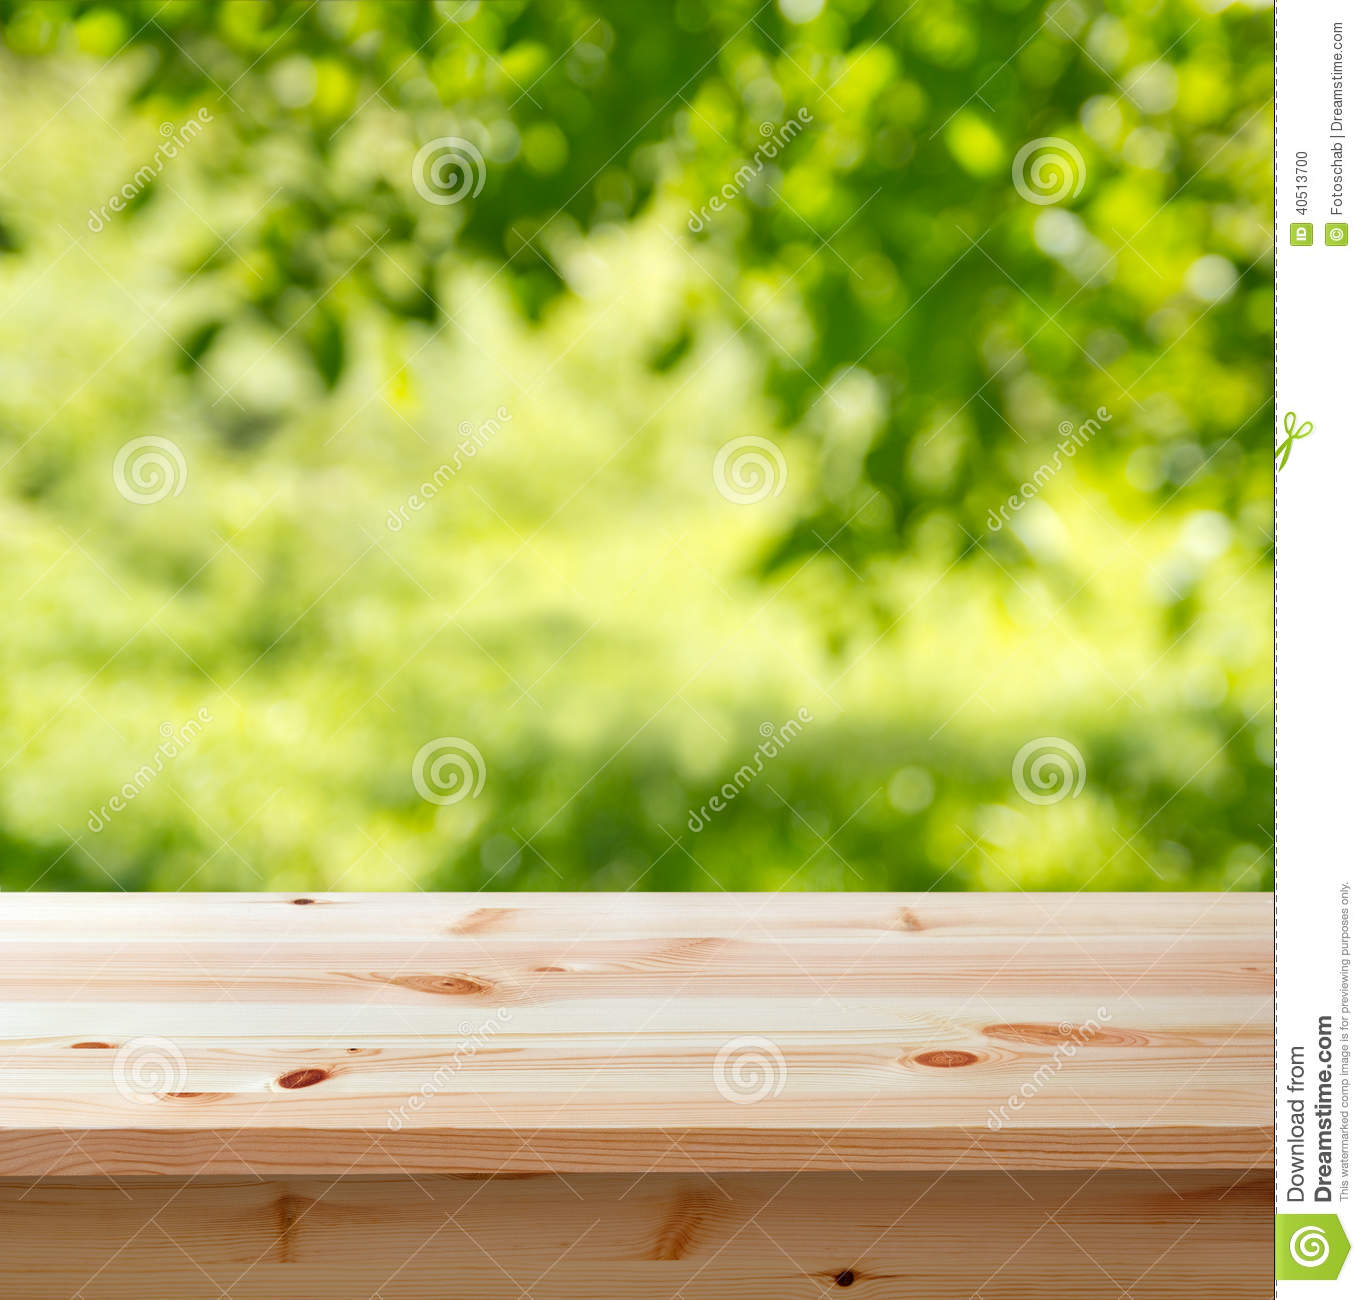 Empty Table In The Garden Stock Photo - Image: 40513700